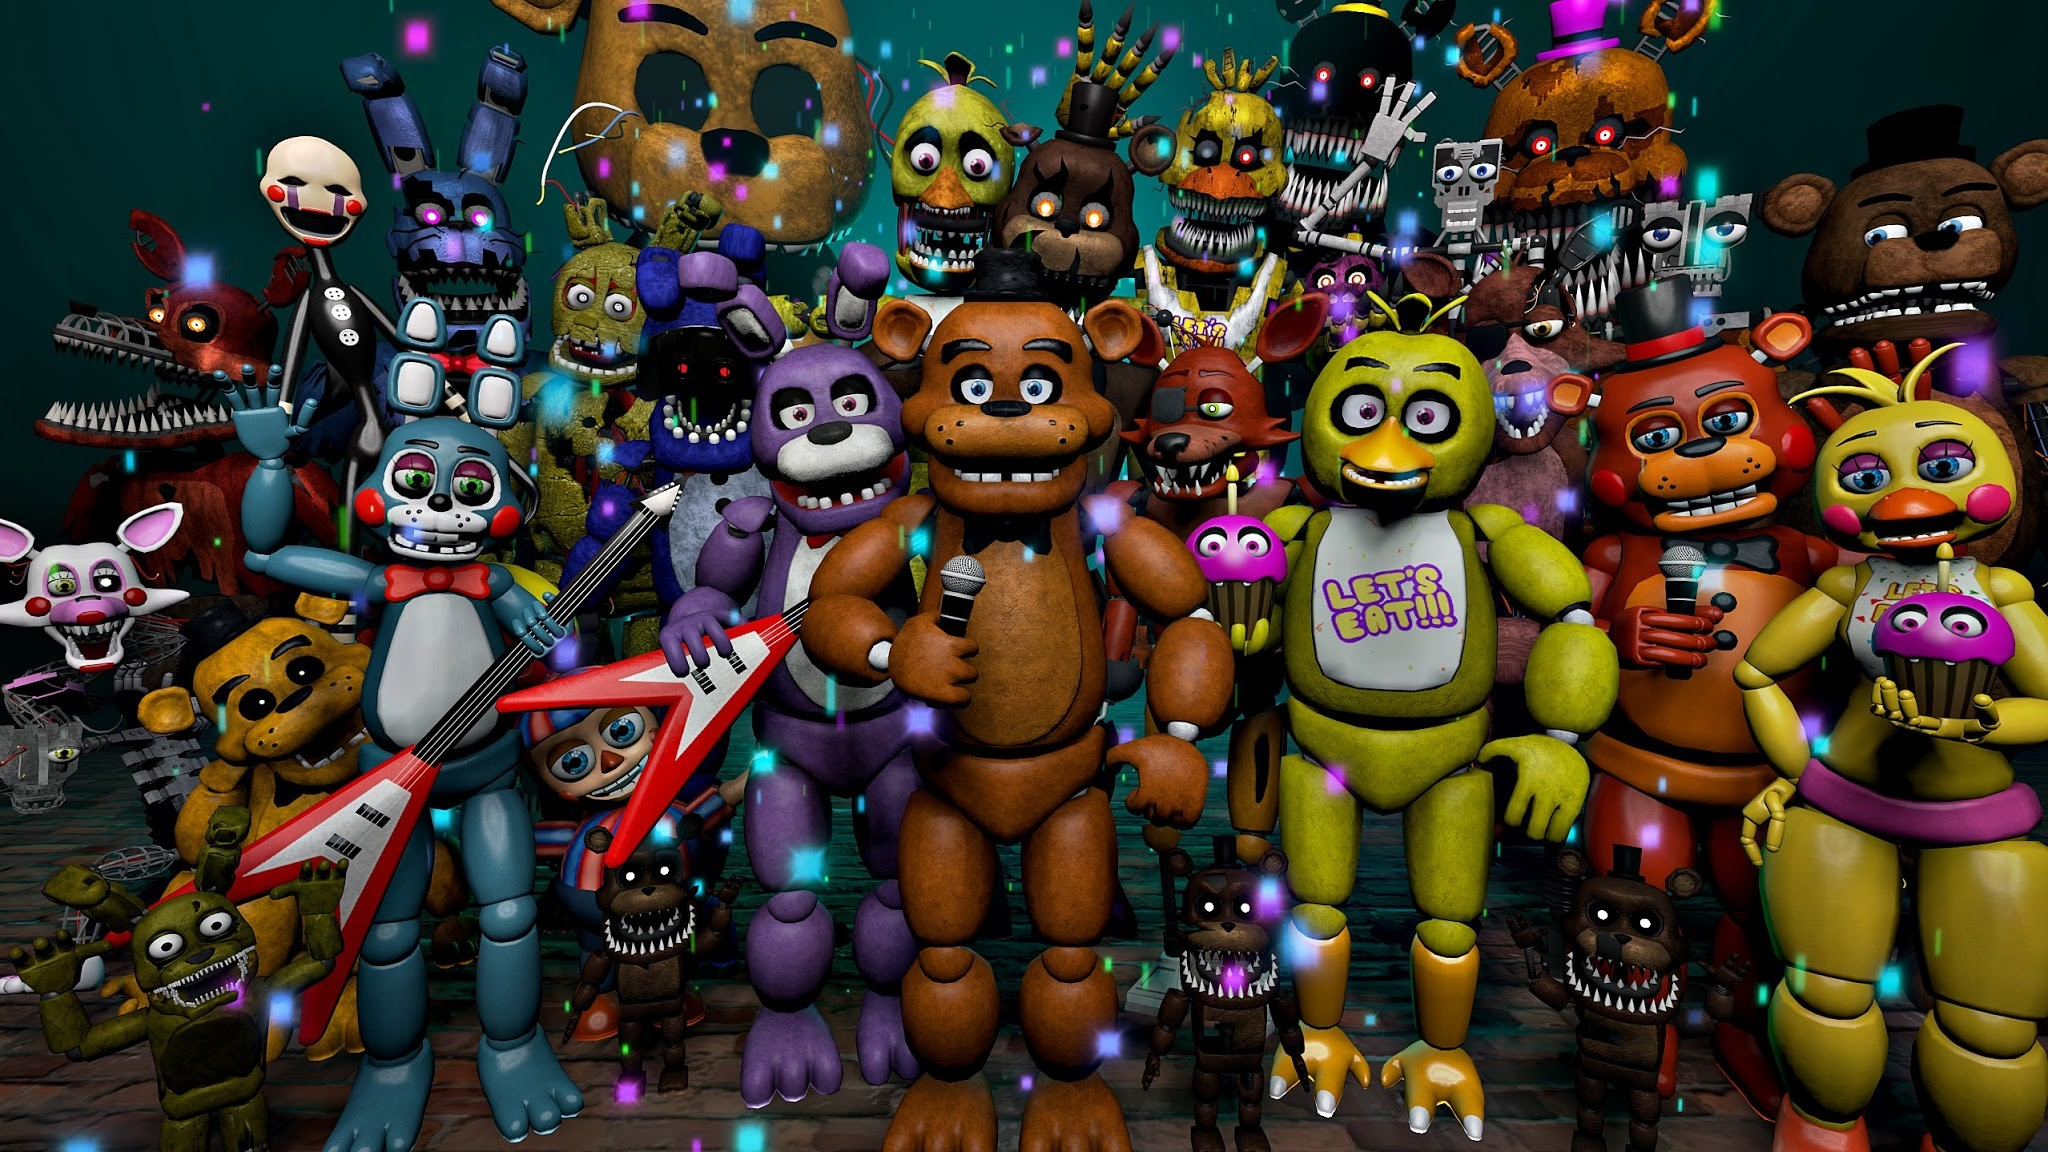 Fnaf all characters